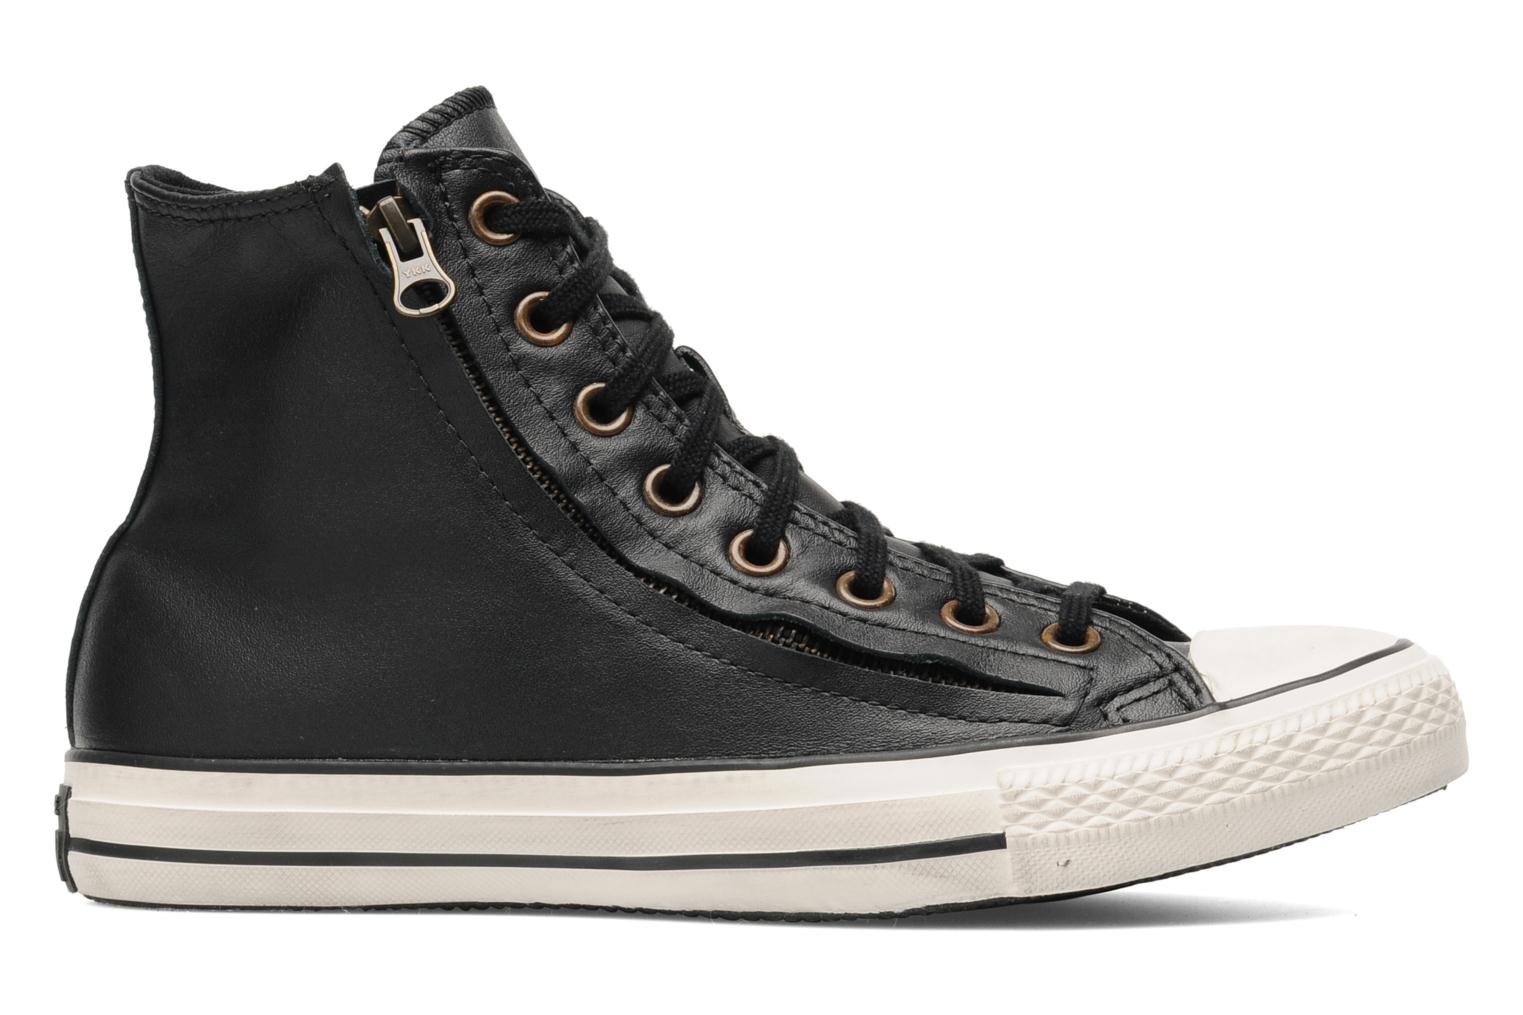 Baskets Converse Chuck Taylor All Star Rc Leather Double Zip Hi M Noir vue derrière